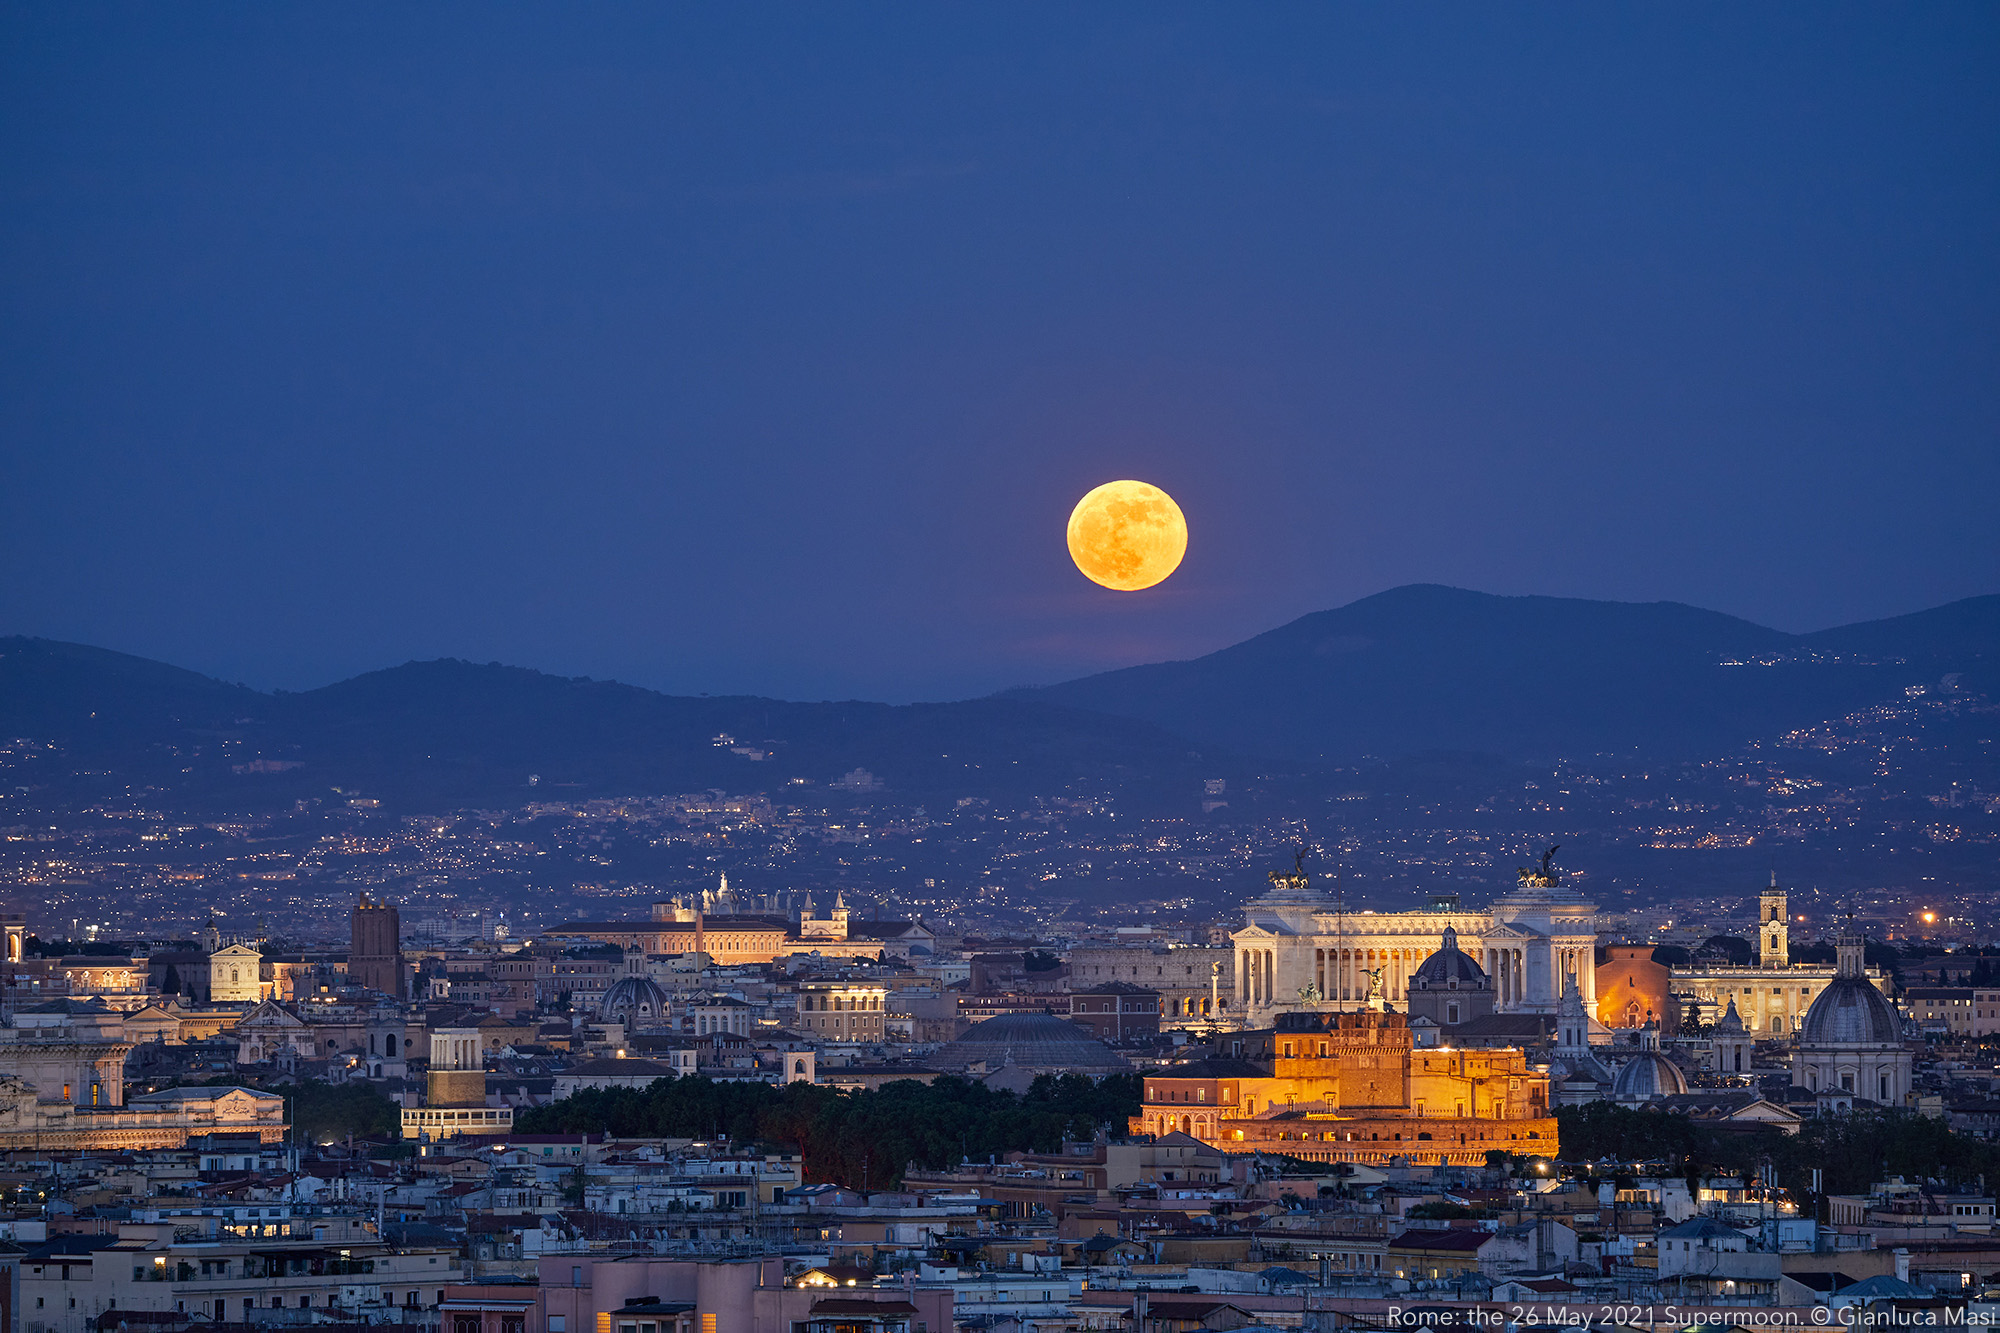 A wider view on Rome and the Supermoon. 26 May 2021.